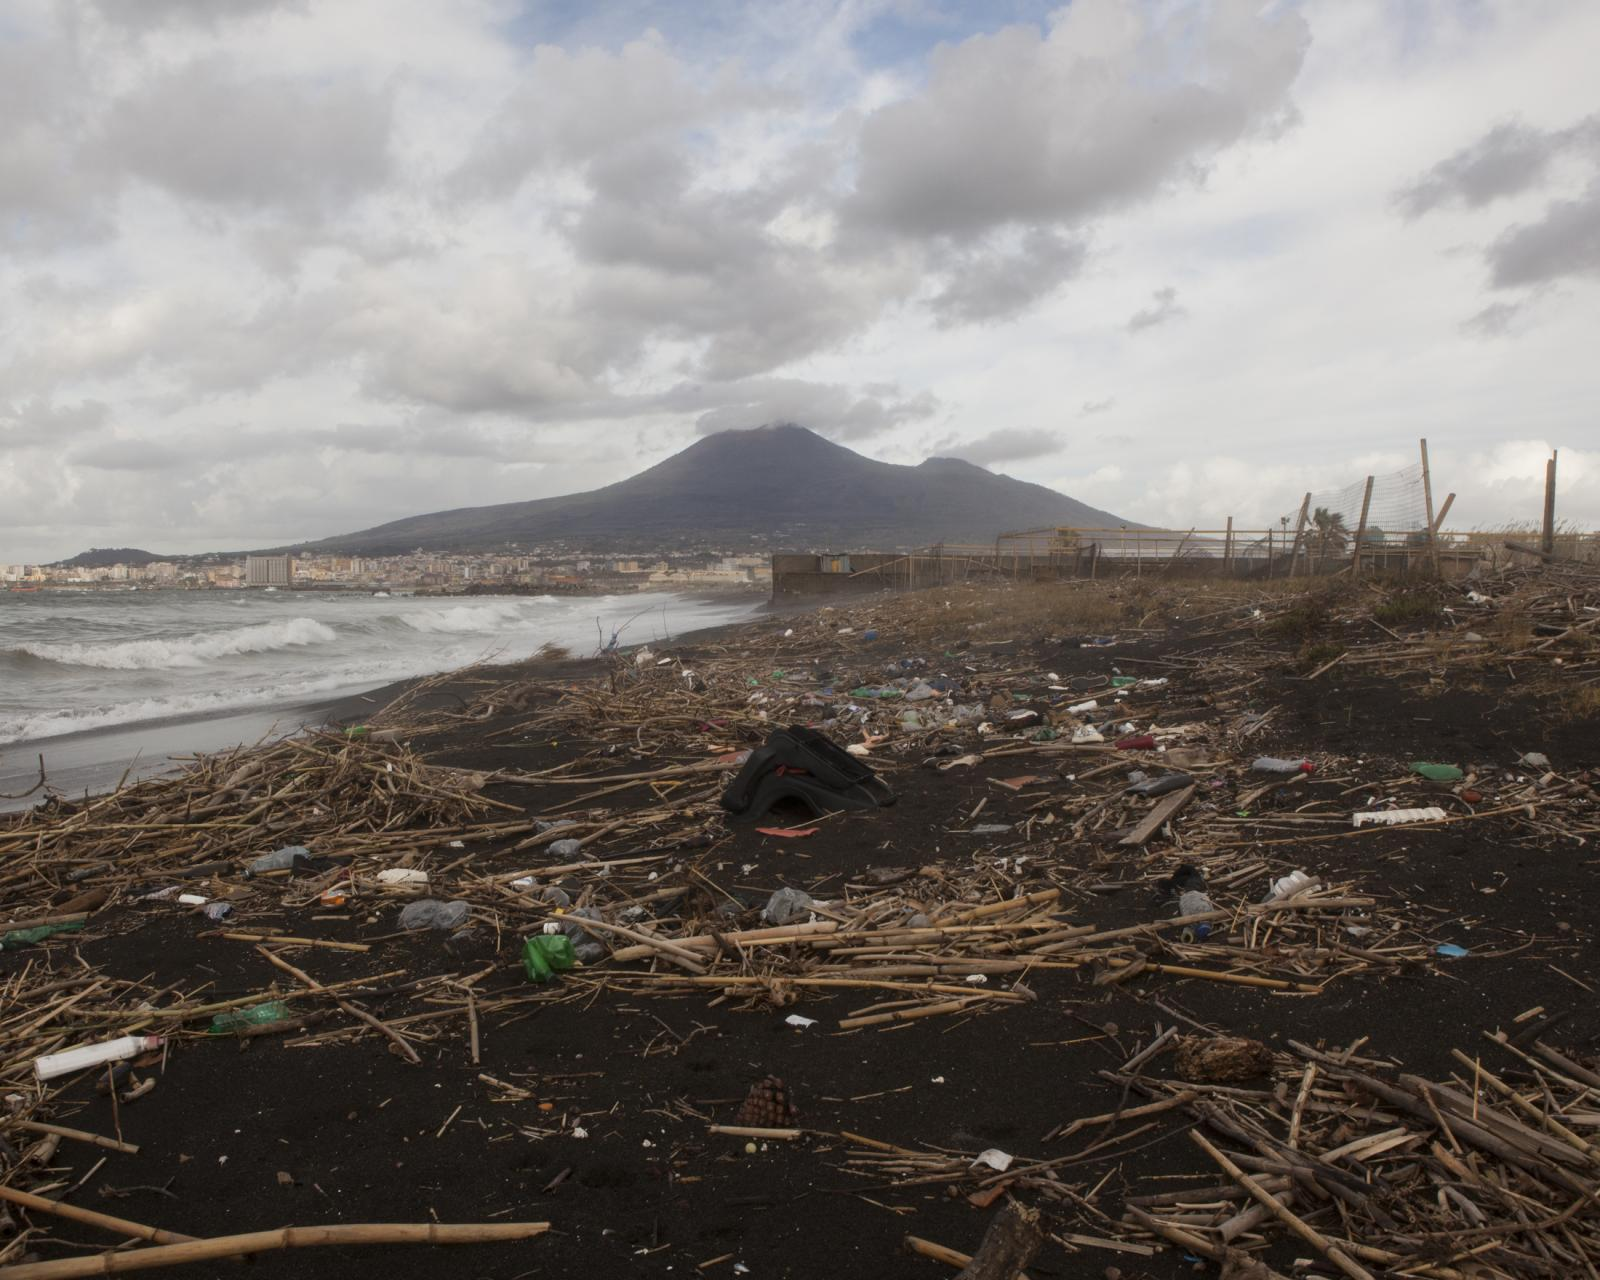 Torre Annunziata, November 2018. View of Vesuvius with garbage heap on the beach. All the chemical and solid waste from the river pours into the sea, making almost 10km of coast between the Gulf of Naples and the Amalfi Coast unfit for bathing, due to the currents that send this waste back to shore and make the water polluted and harmful to health.